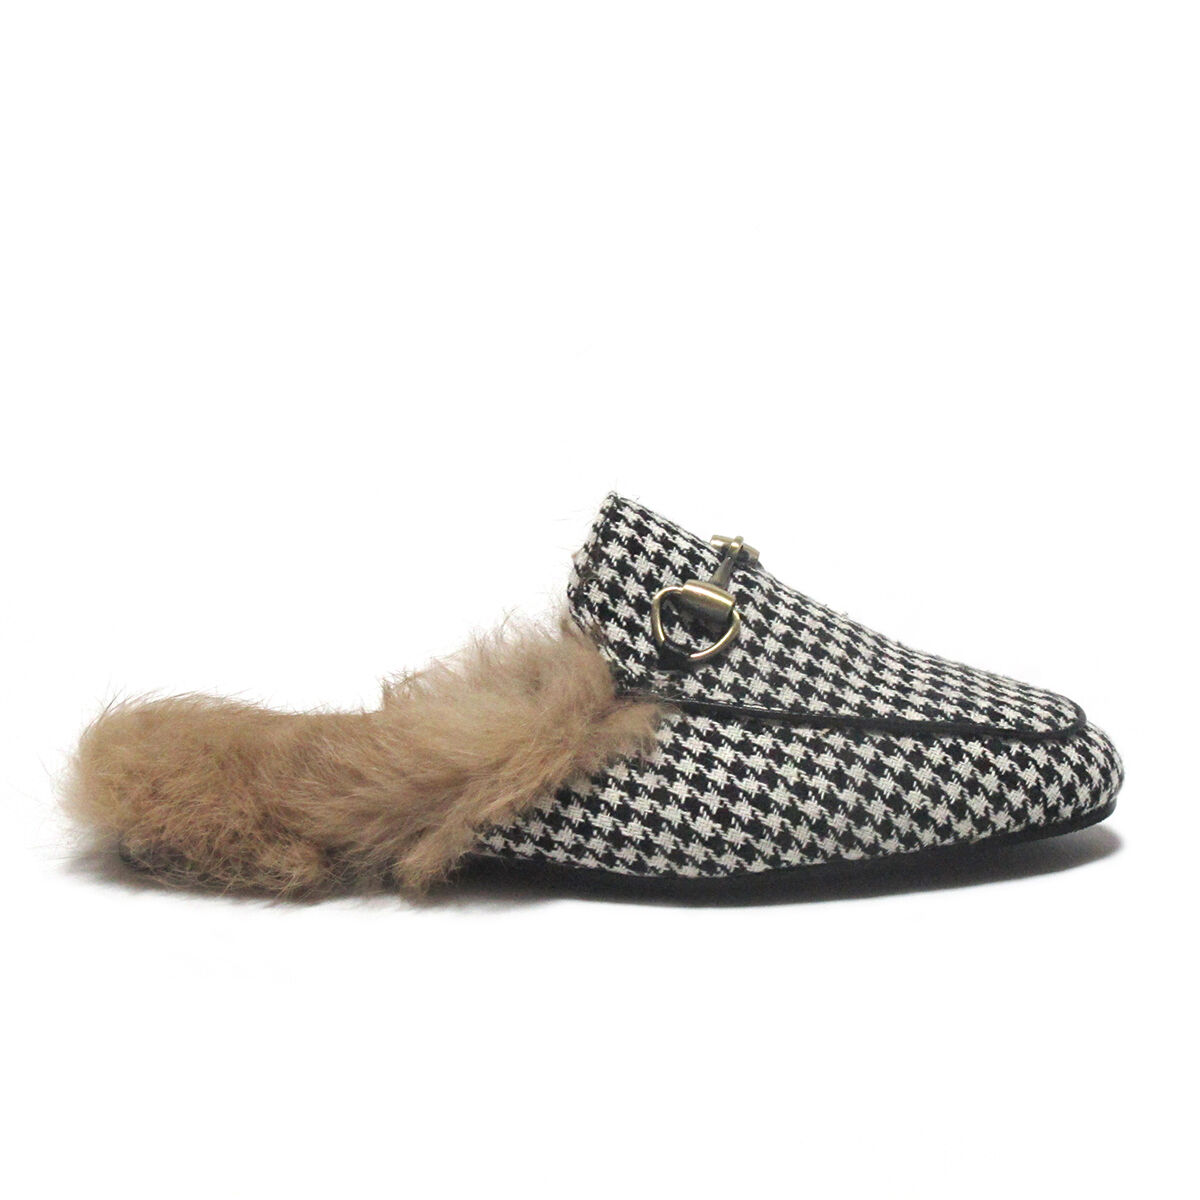 Horsebit Detailed Rabbit-Fur Lined Houndstooth Princetown Slide Loafers Slippers Slippers Slippers 943d15